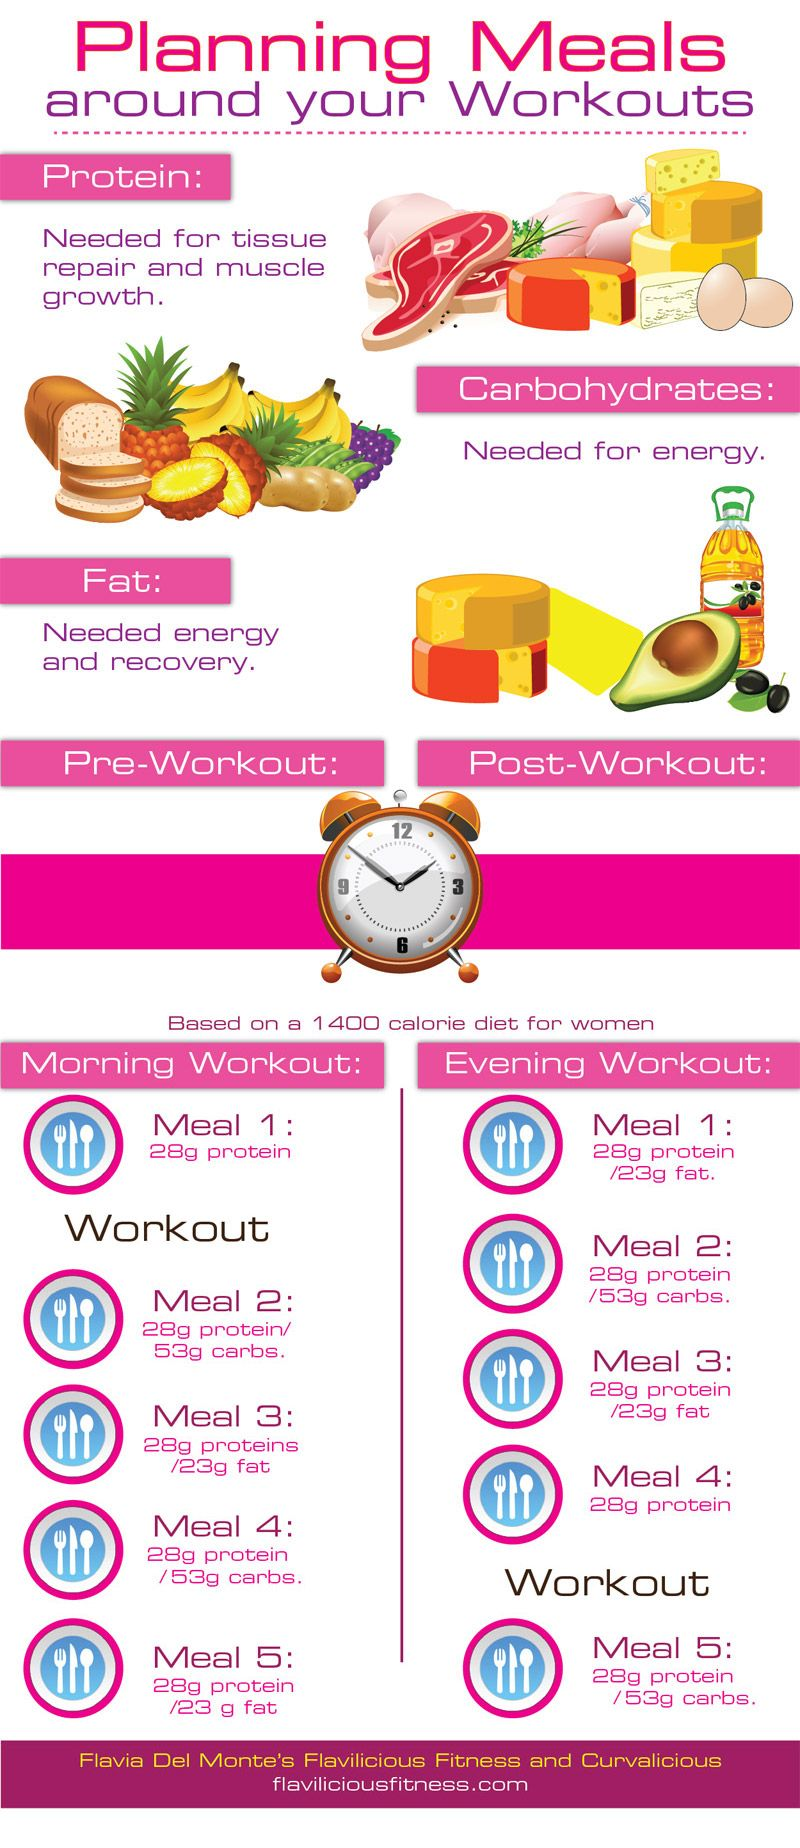 Pin by Emily Starr on Healthful Hints   Workout food, Health ...